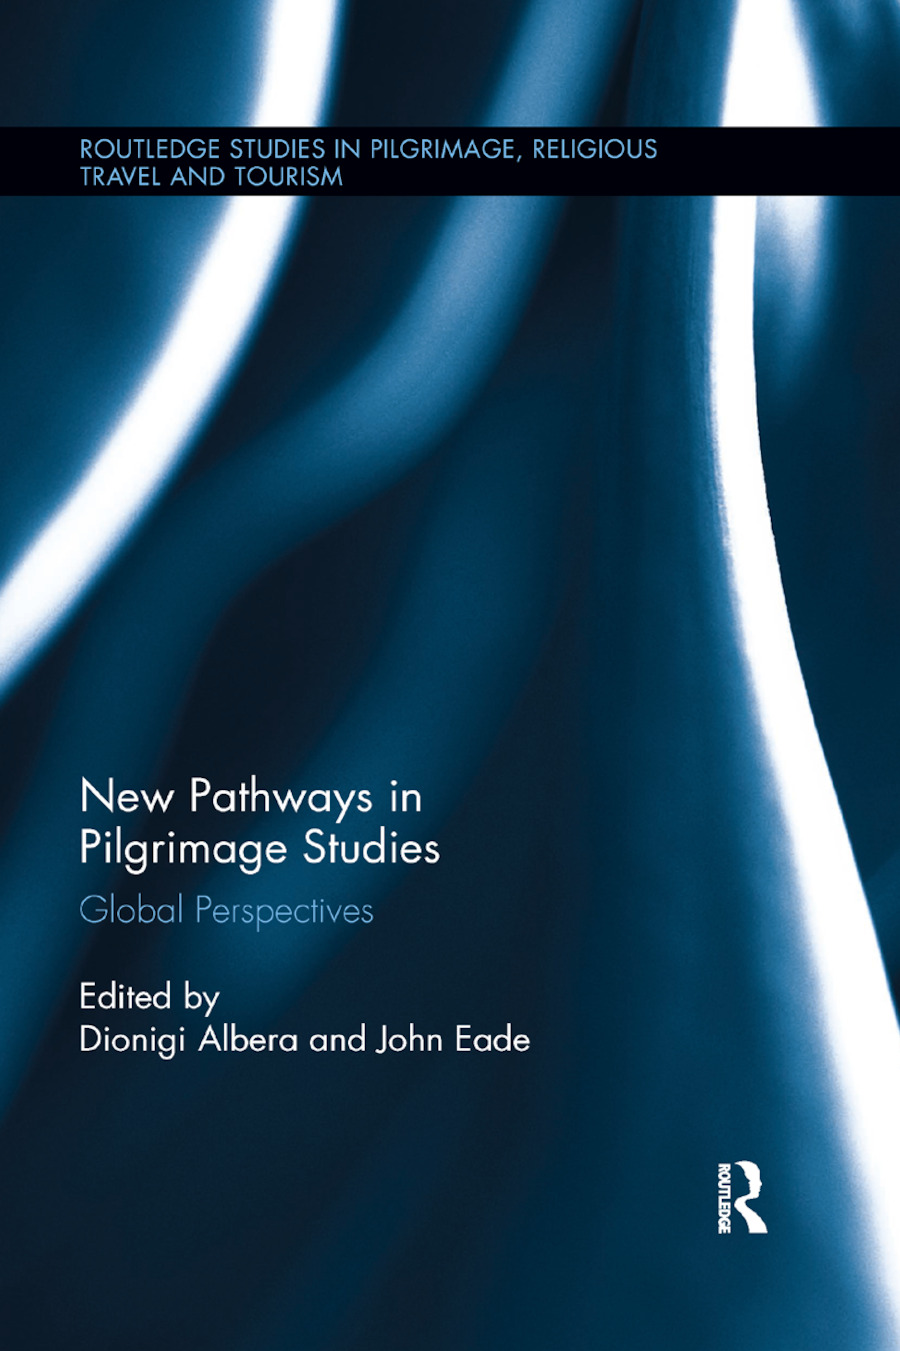 New Pathways in Pilgrimage Studies